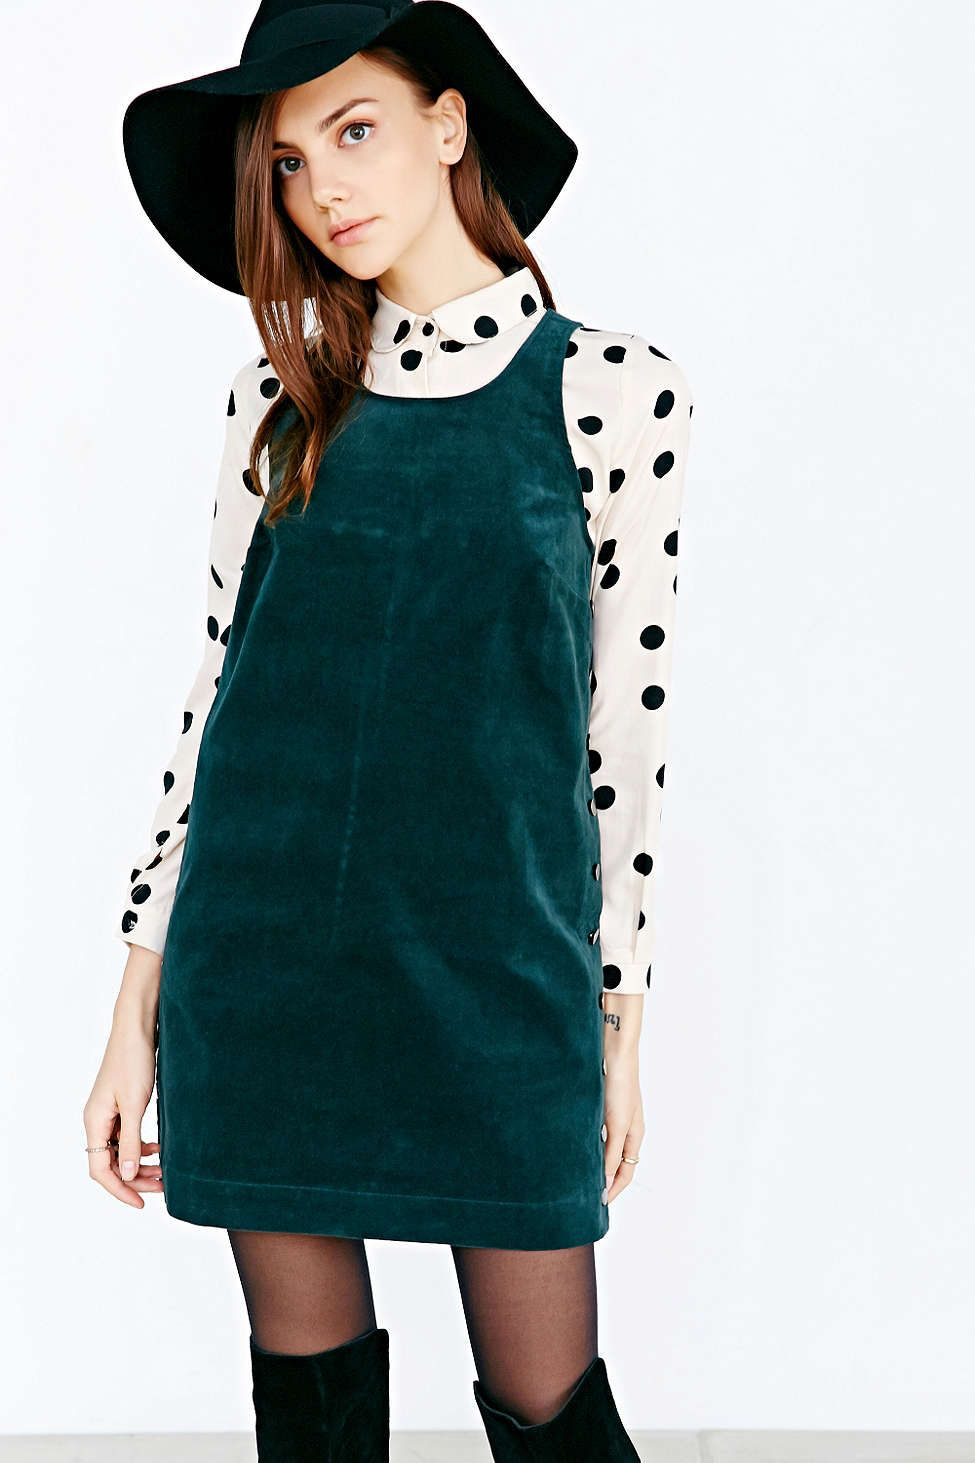 Cooperative Polly Frock-et Dress - Urban Outfitters